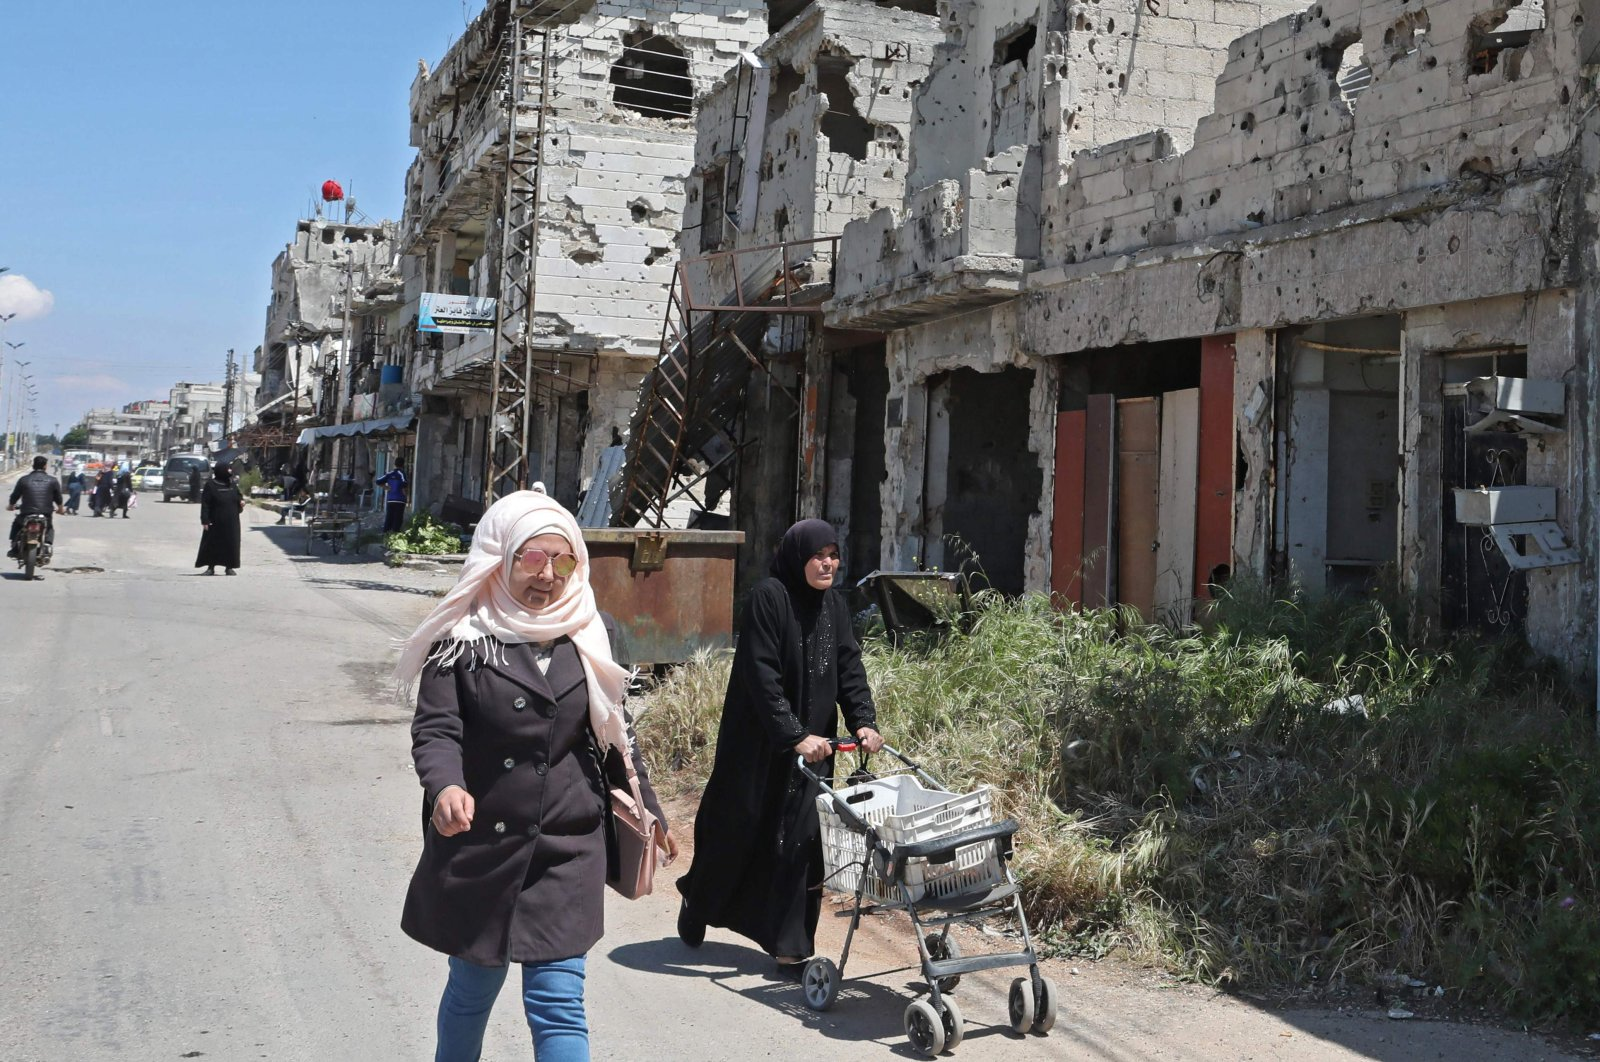 Syrians walk past buildings heavily damaged during Syria's civil war, in the central city of Homs, April 28, 2020. (AFP)